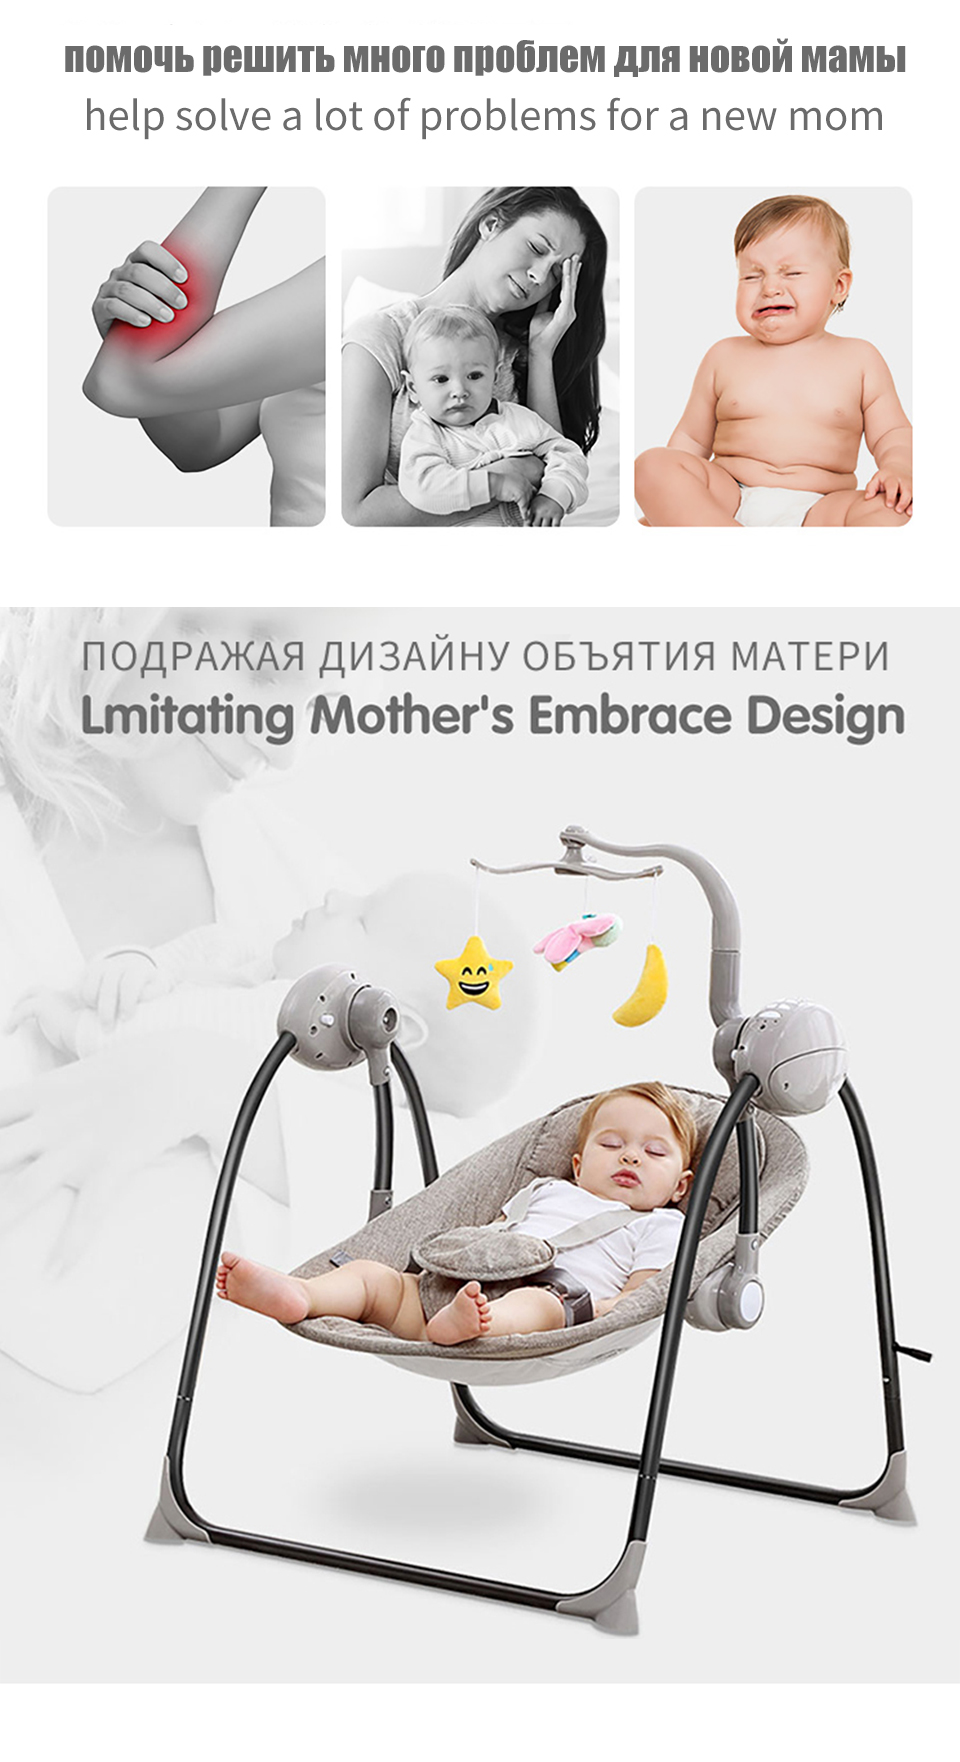 H934c443e0b0b45c3b096ef99298db380K IMBABY New Baby Electric Rocking Chair Cradle Foldable Baby Comfort Recliner for Newborn Bebe Safety Comfort Rocker Swings Chair